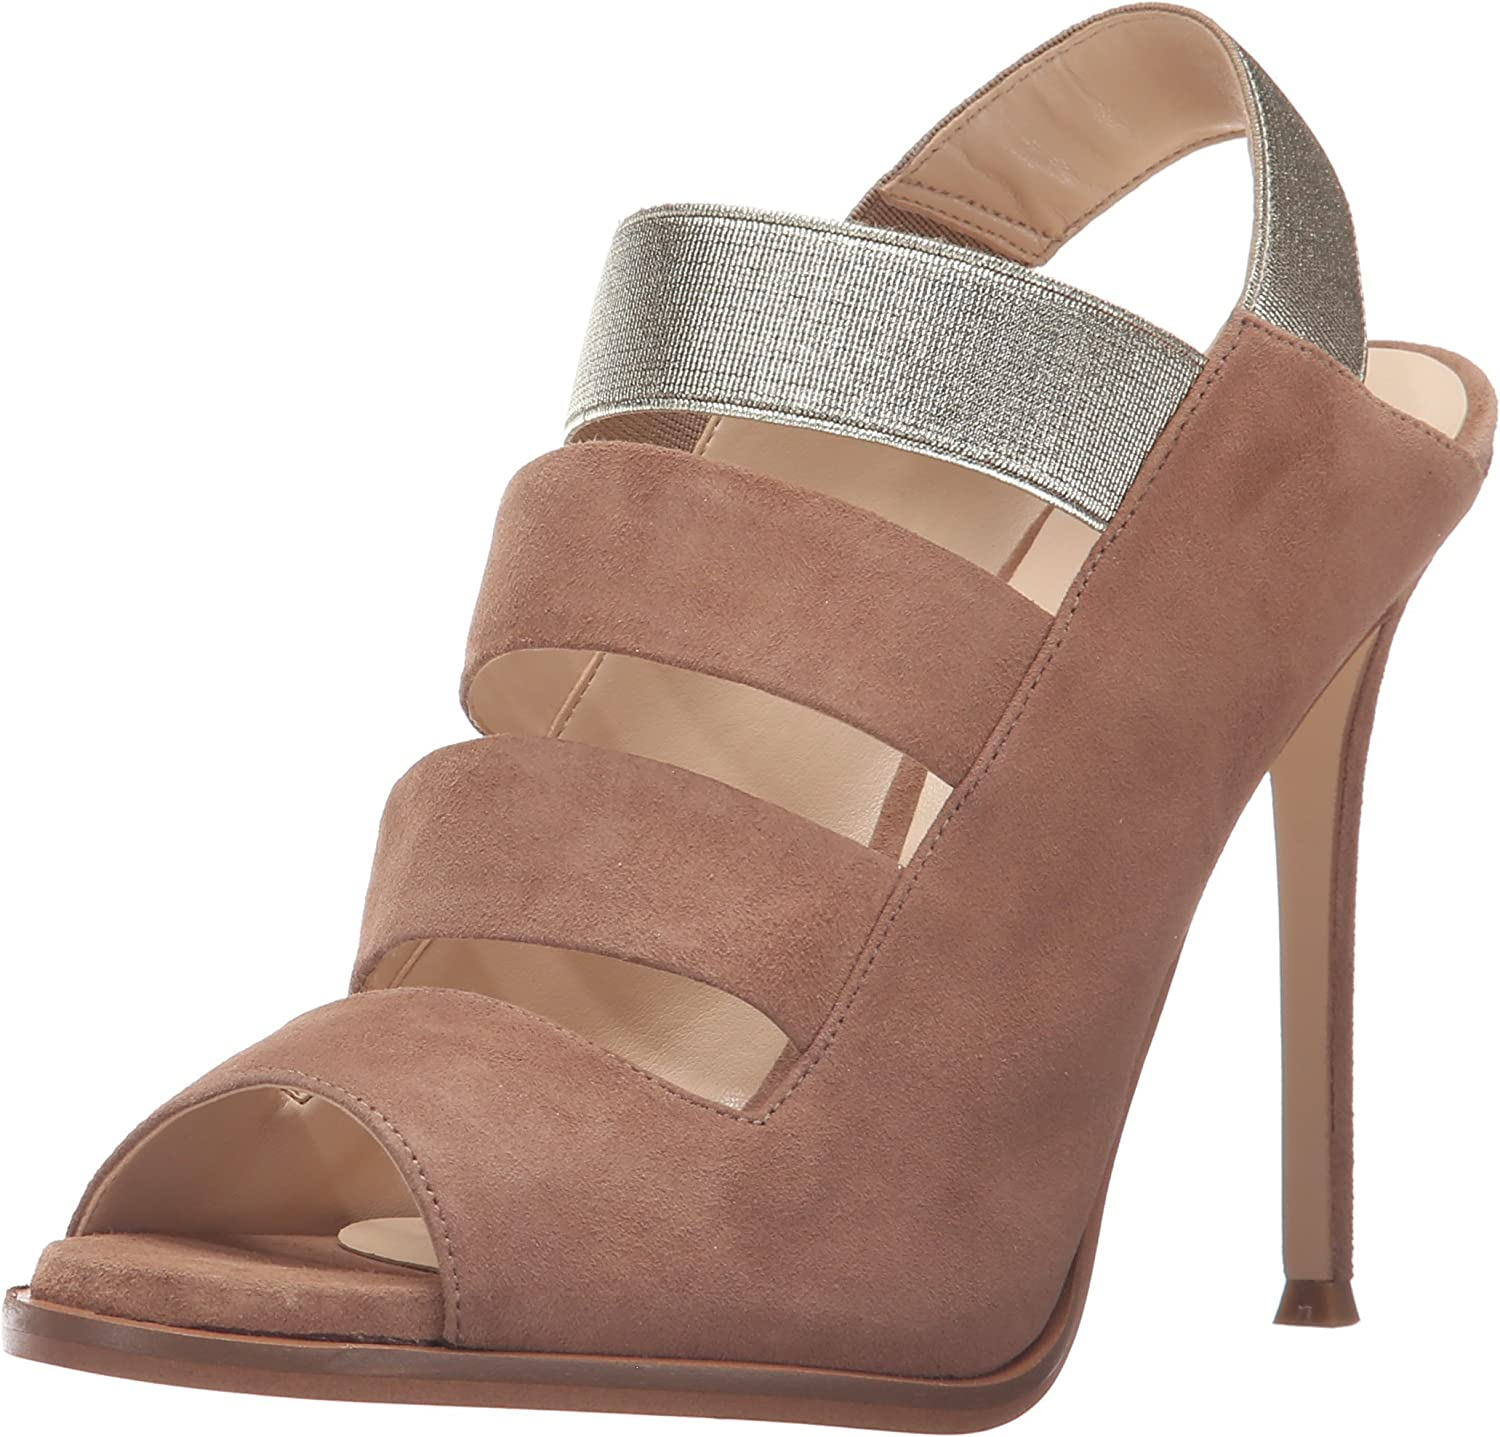 Nine West Women's HALLAN Pumps